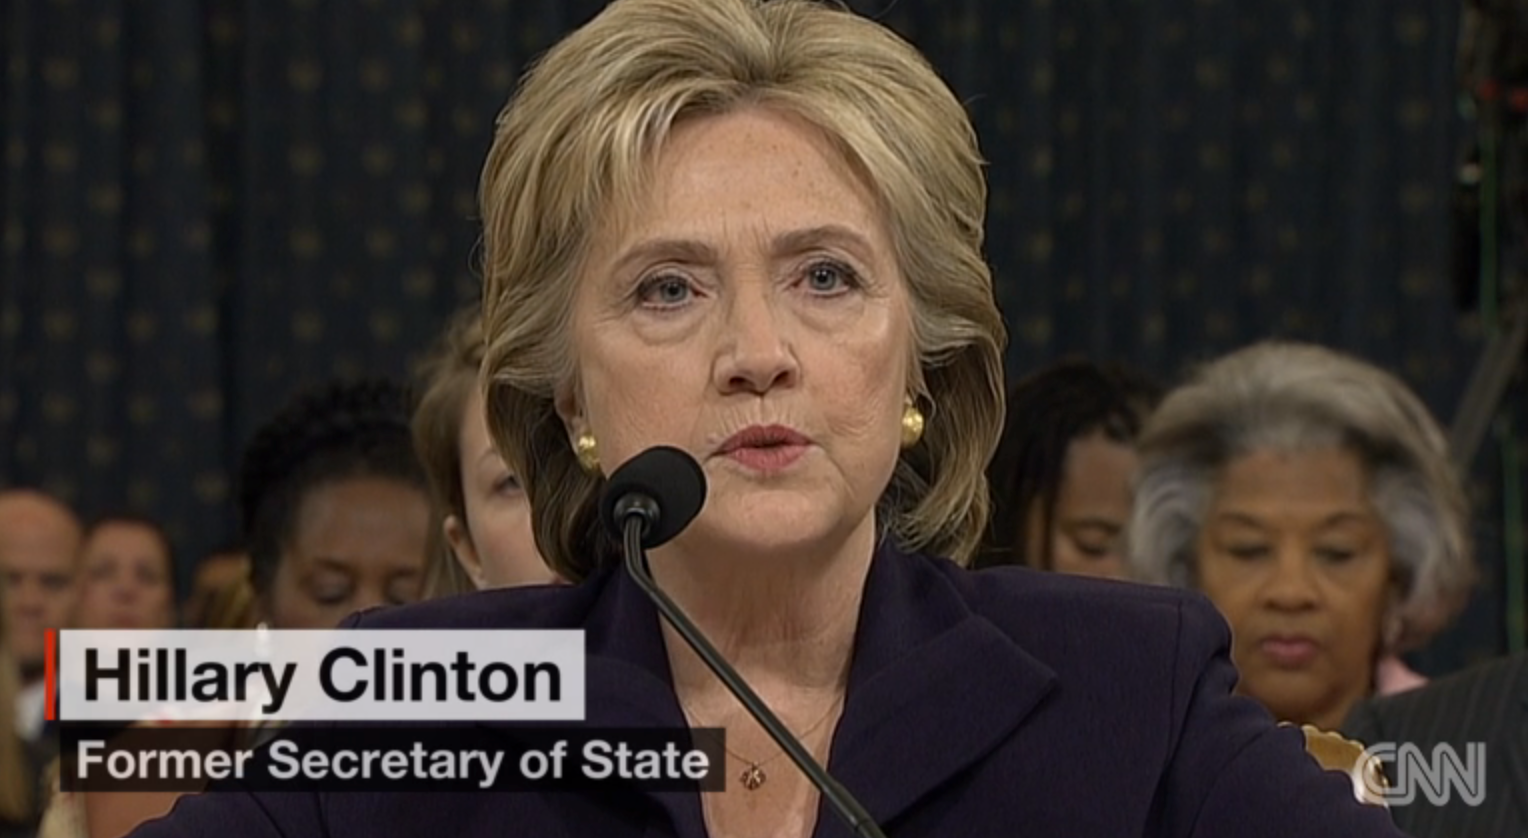 Former State Secretary Hillary Clinton at the U.S. Congress Benghazi hearing